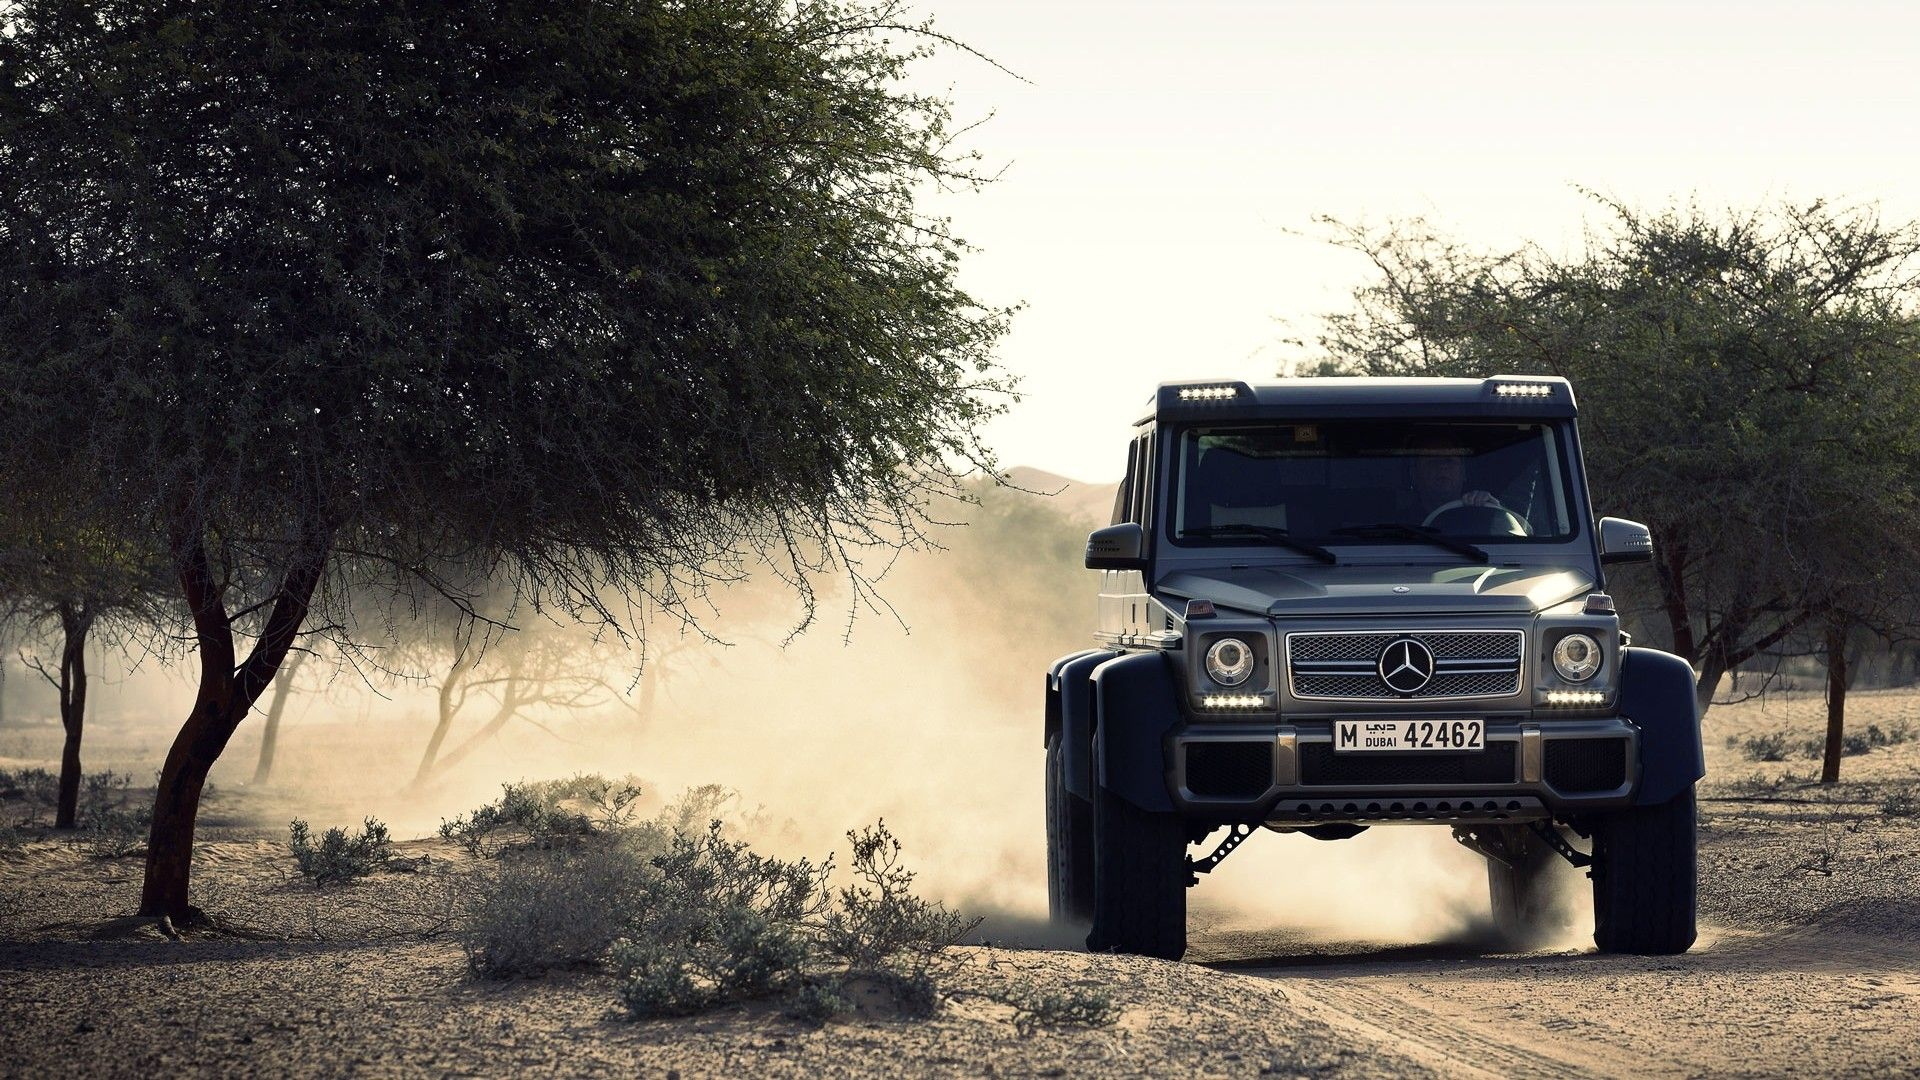 00027804 mercedes benz g 1920 1080 4x4 pinterest mercedes benz benz and - Classe g 6x6 ...